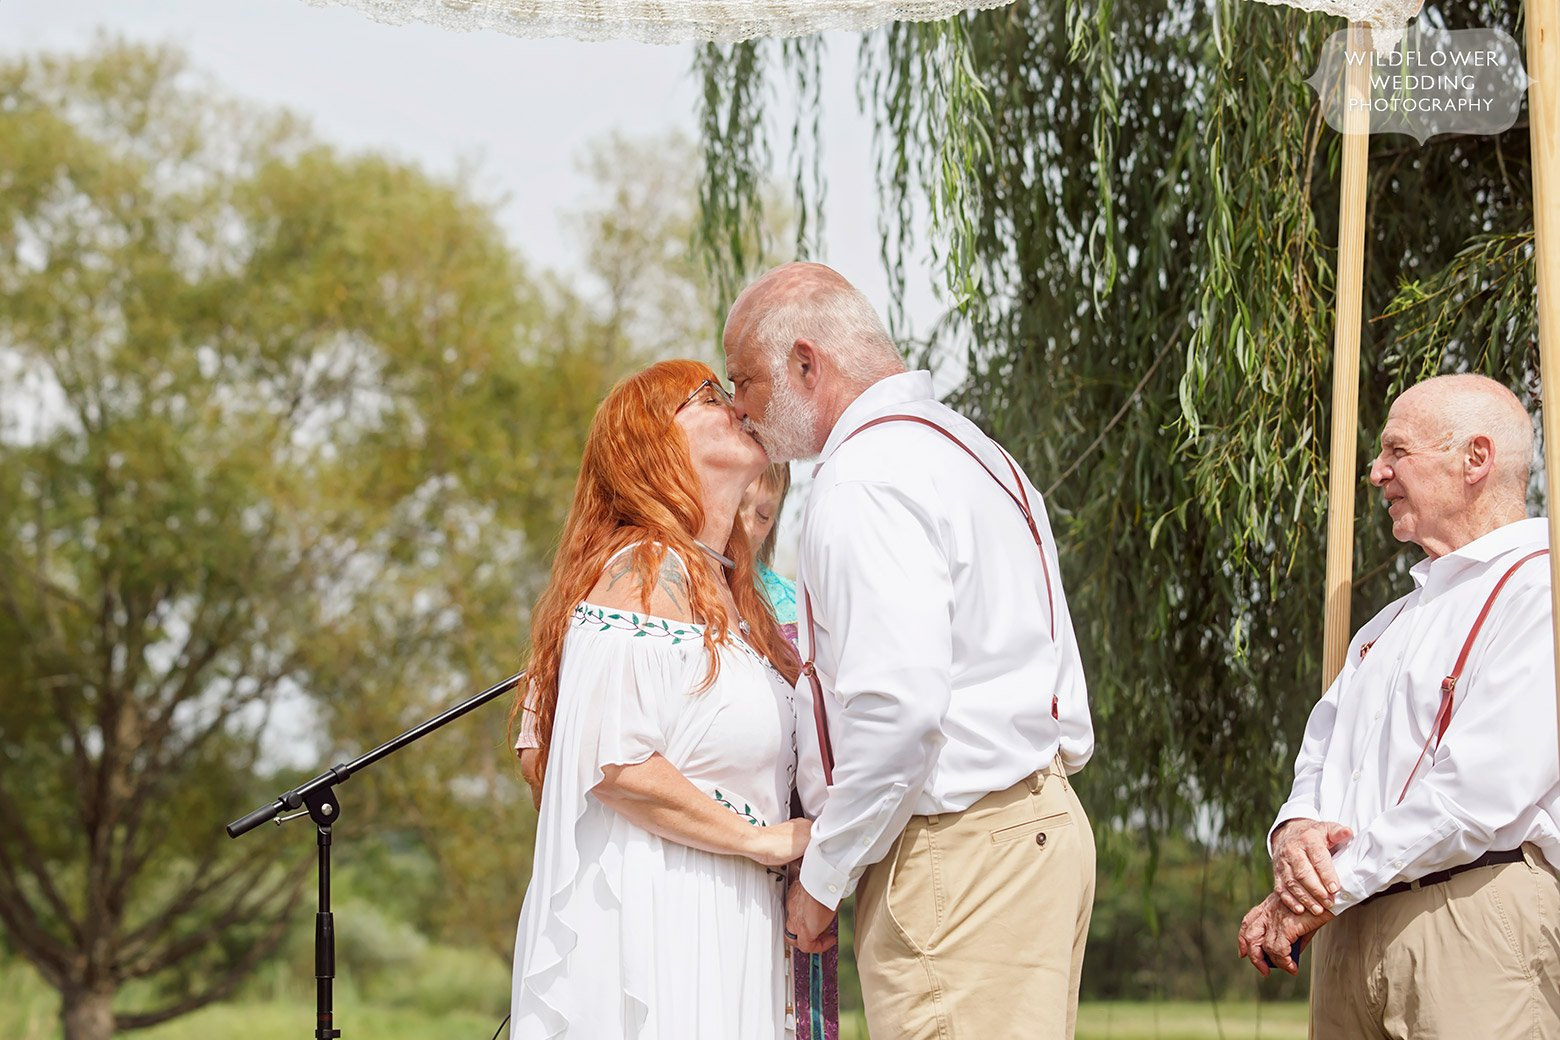 The bride and groom kiss during their outdoor ceremony in southern MO.